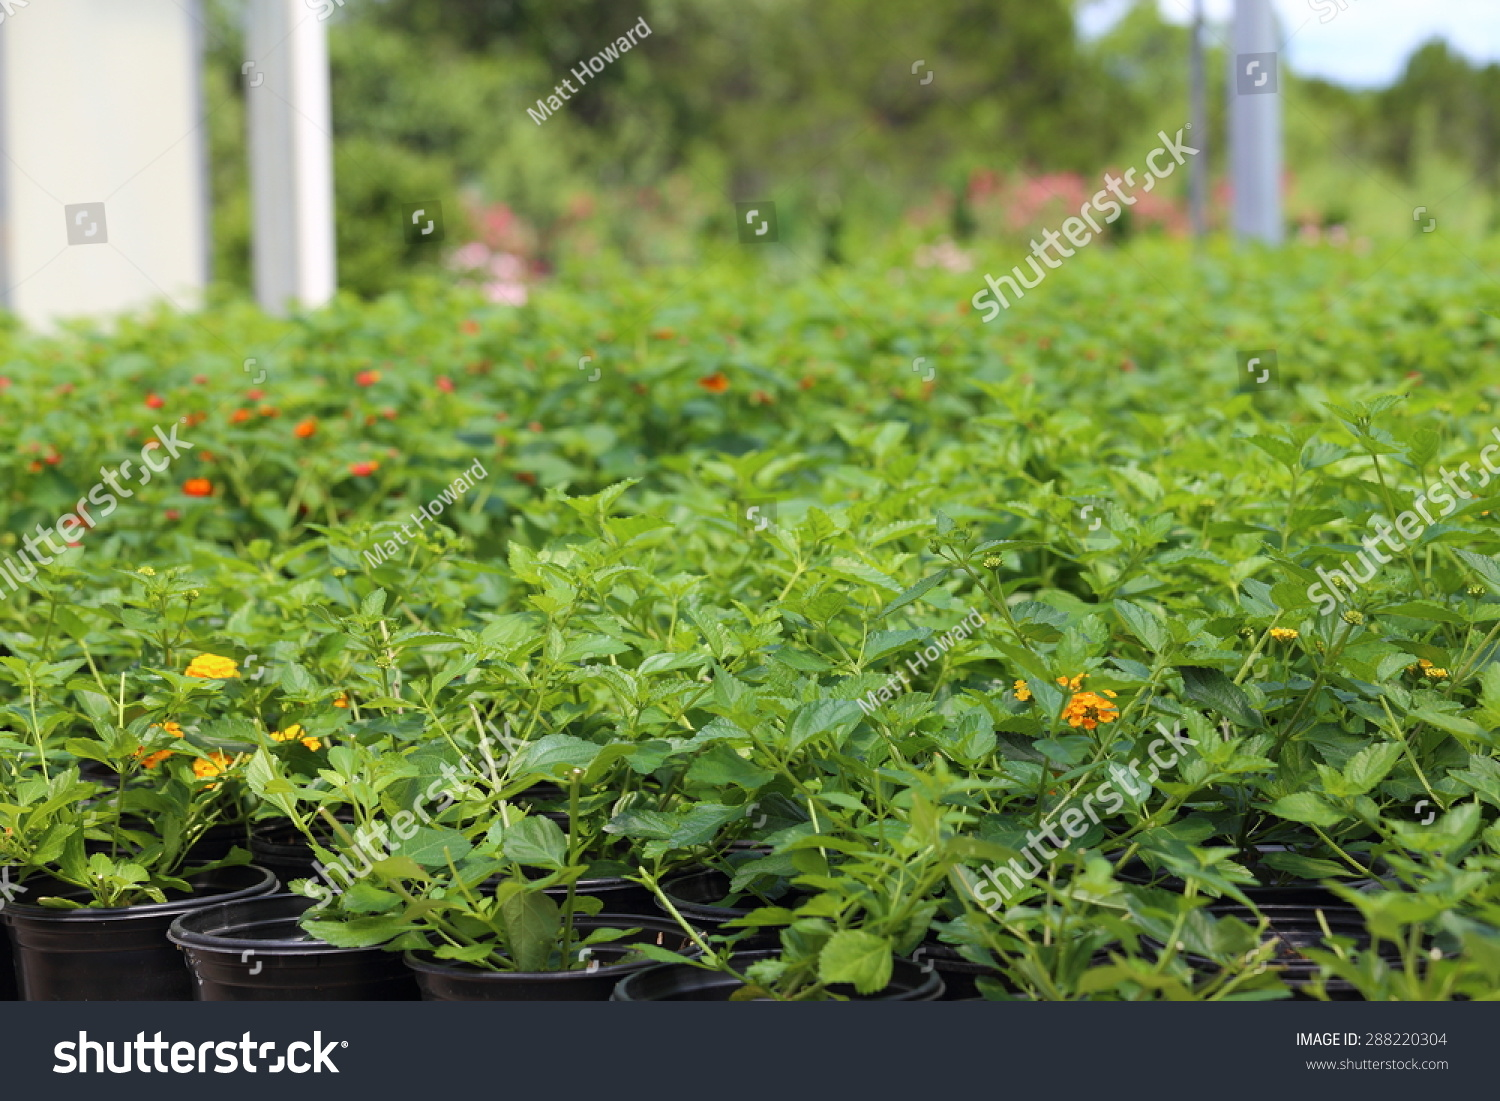 Plant nursery growing different types plants stock photo edit now a plant nursery growing different types of plants like plumbago lantana salvia and izmirmasajfo